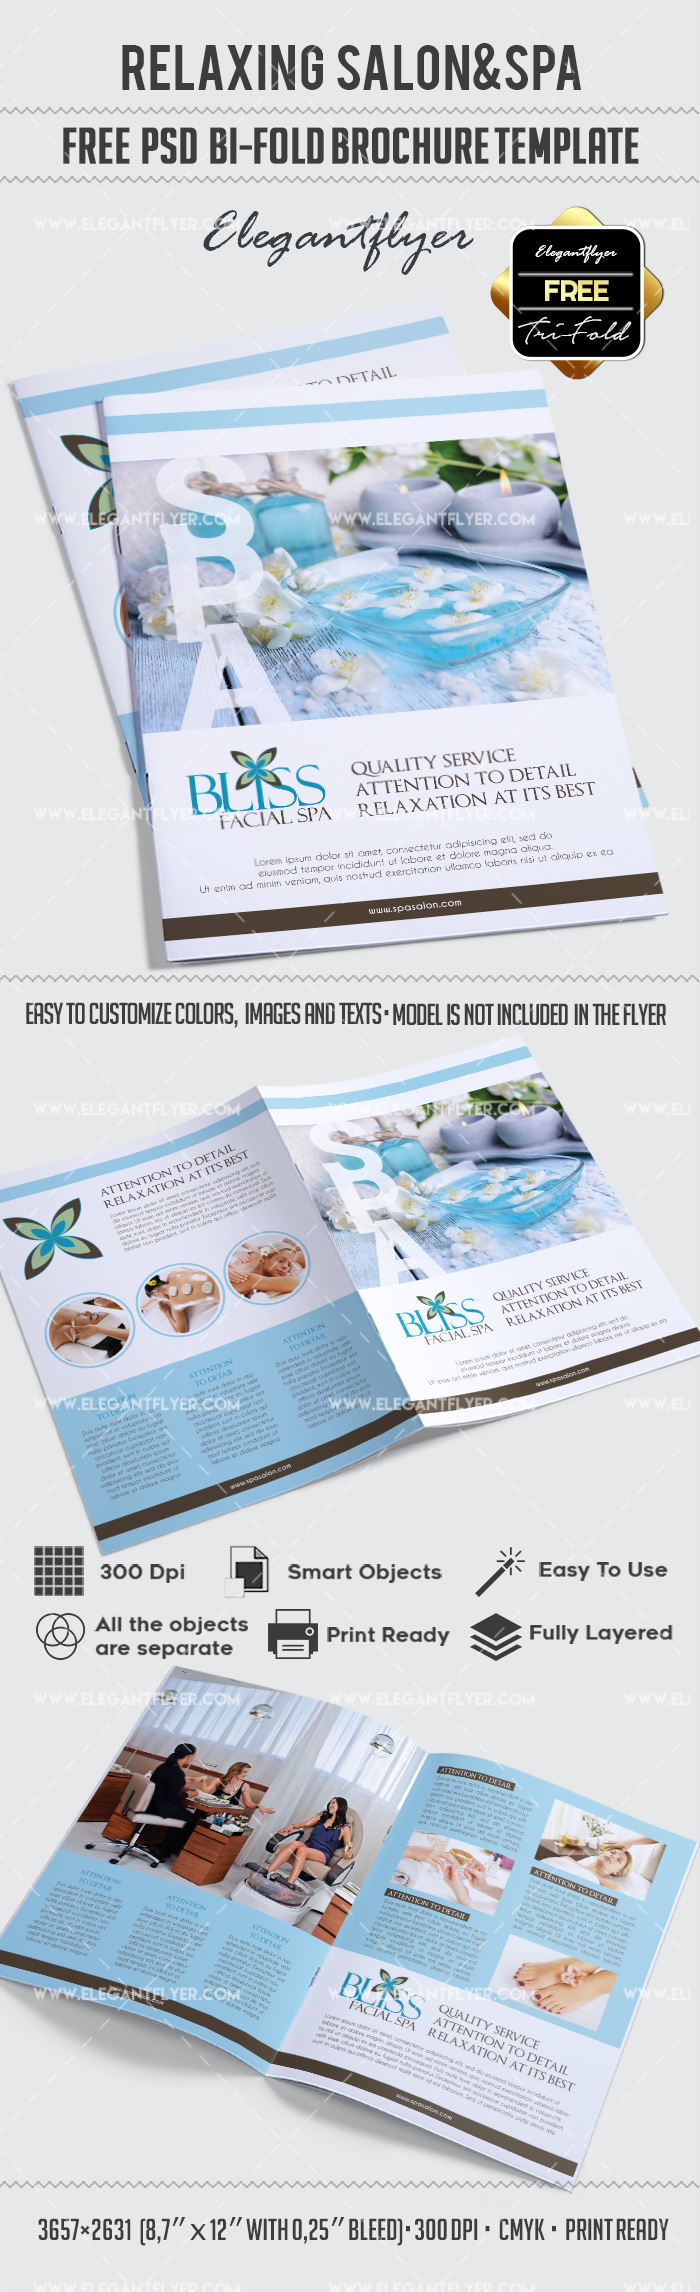 Free relaxing salon for bi fold psd brochure by elegantflyer for Free psd brochure template